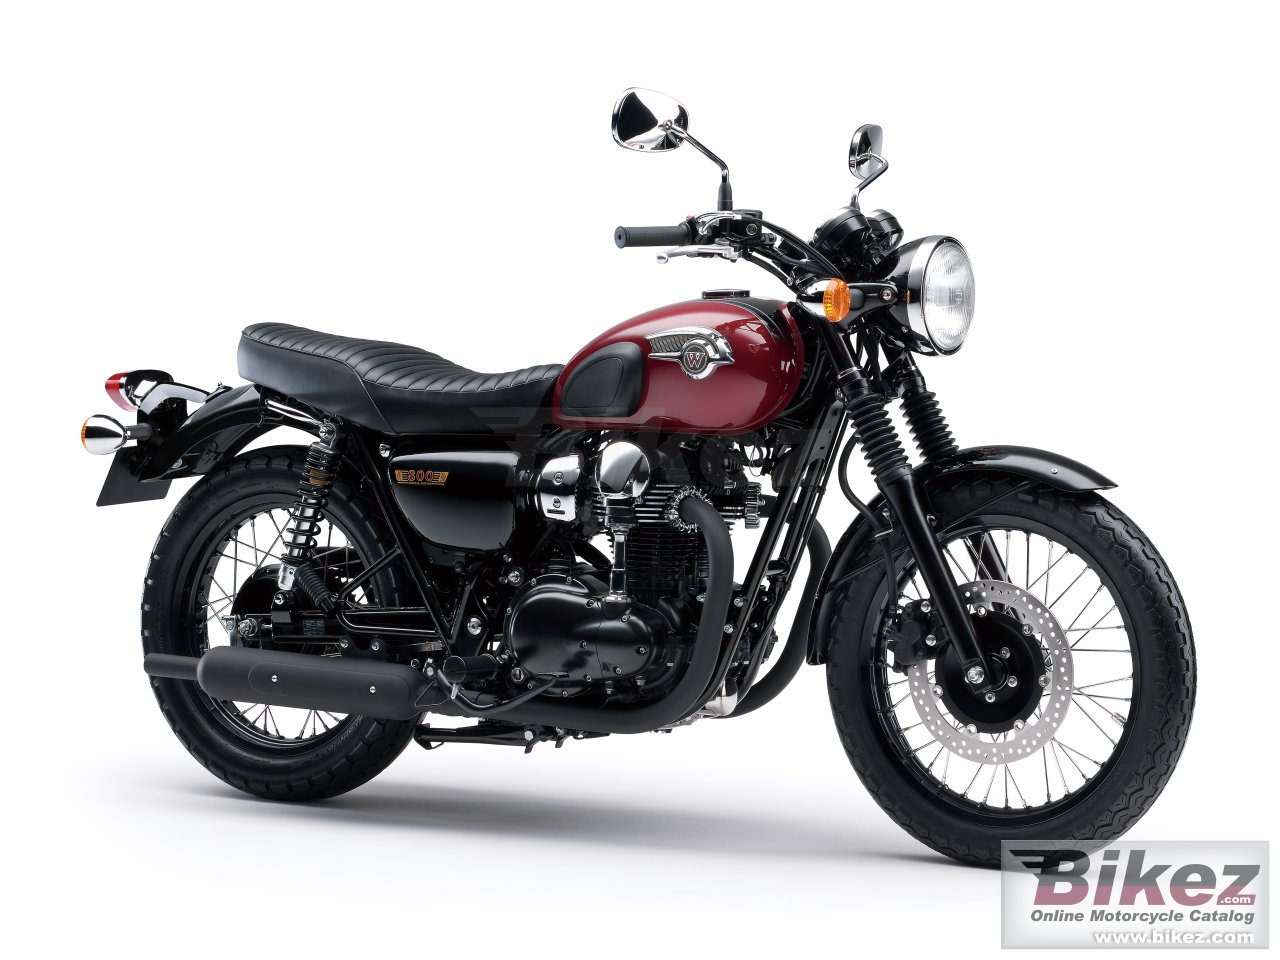 Big Kawasaki w800 special edition picture and wallpaper from Bikez.com